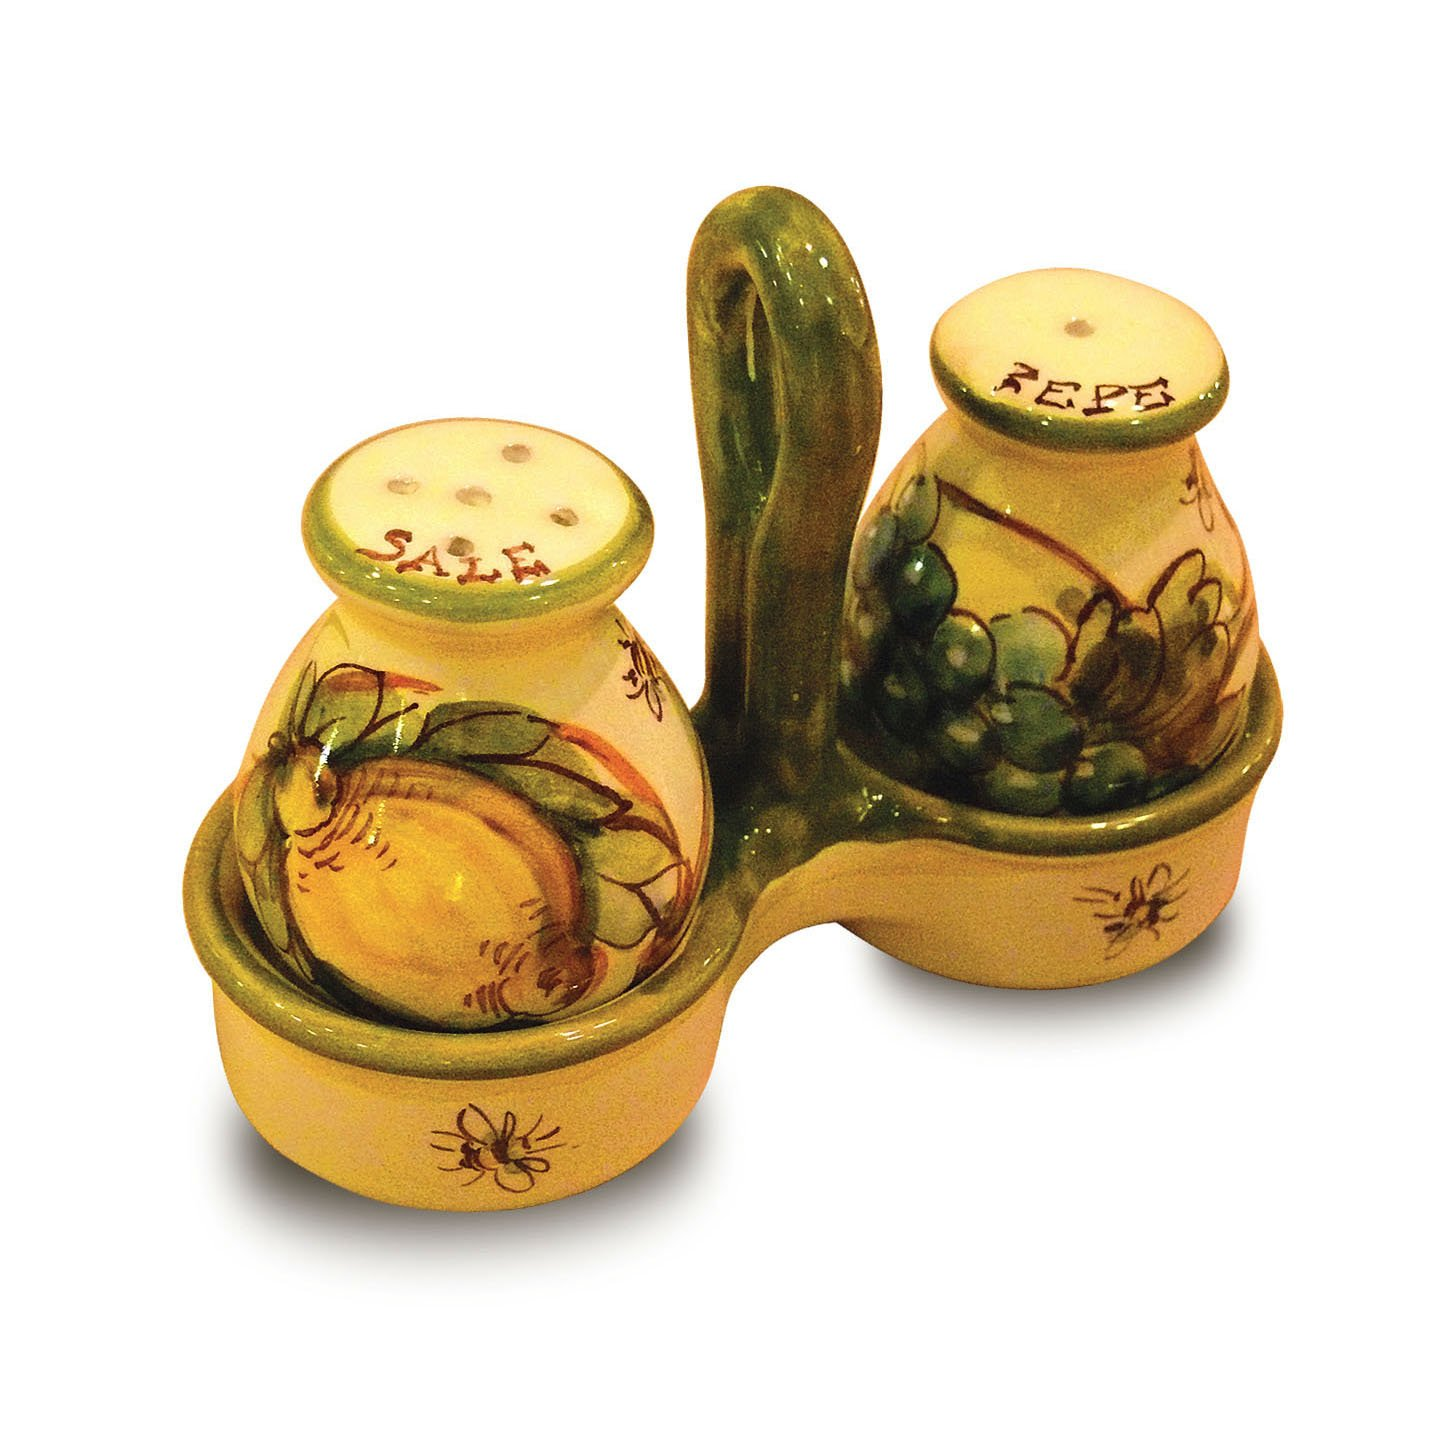 Toscana Hand Painted Bees Salt and Pepper Shakers From Italy